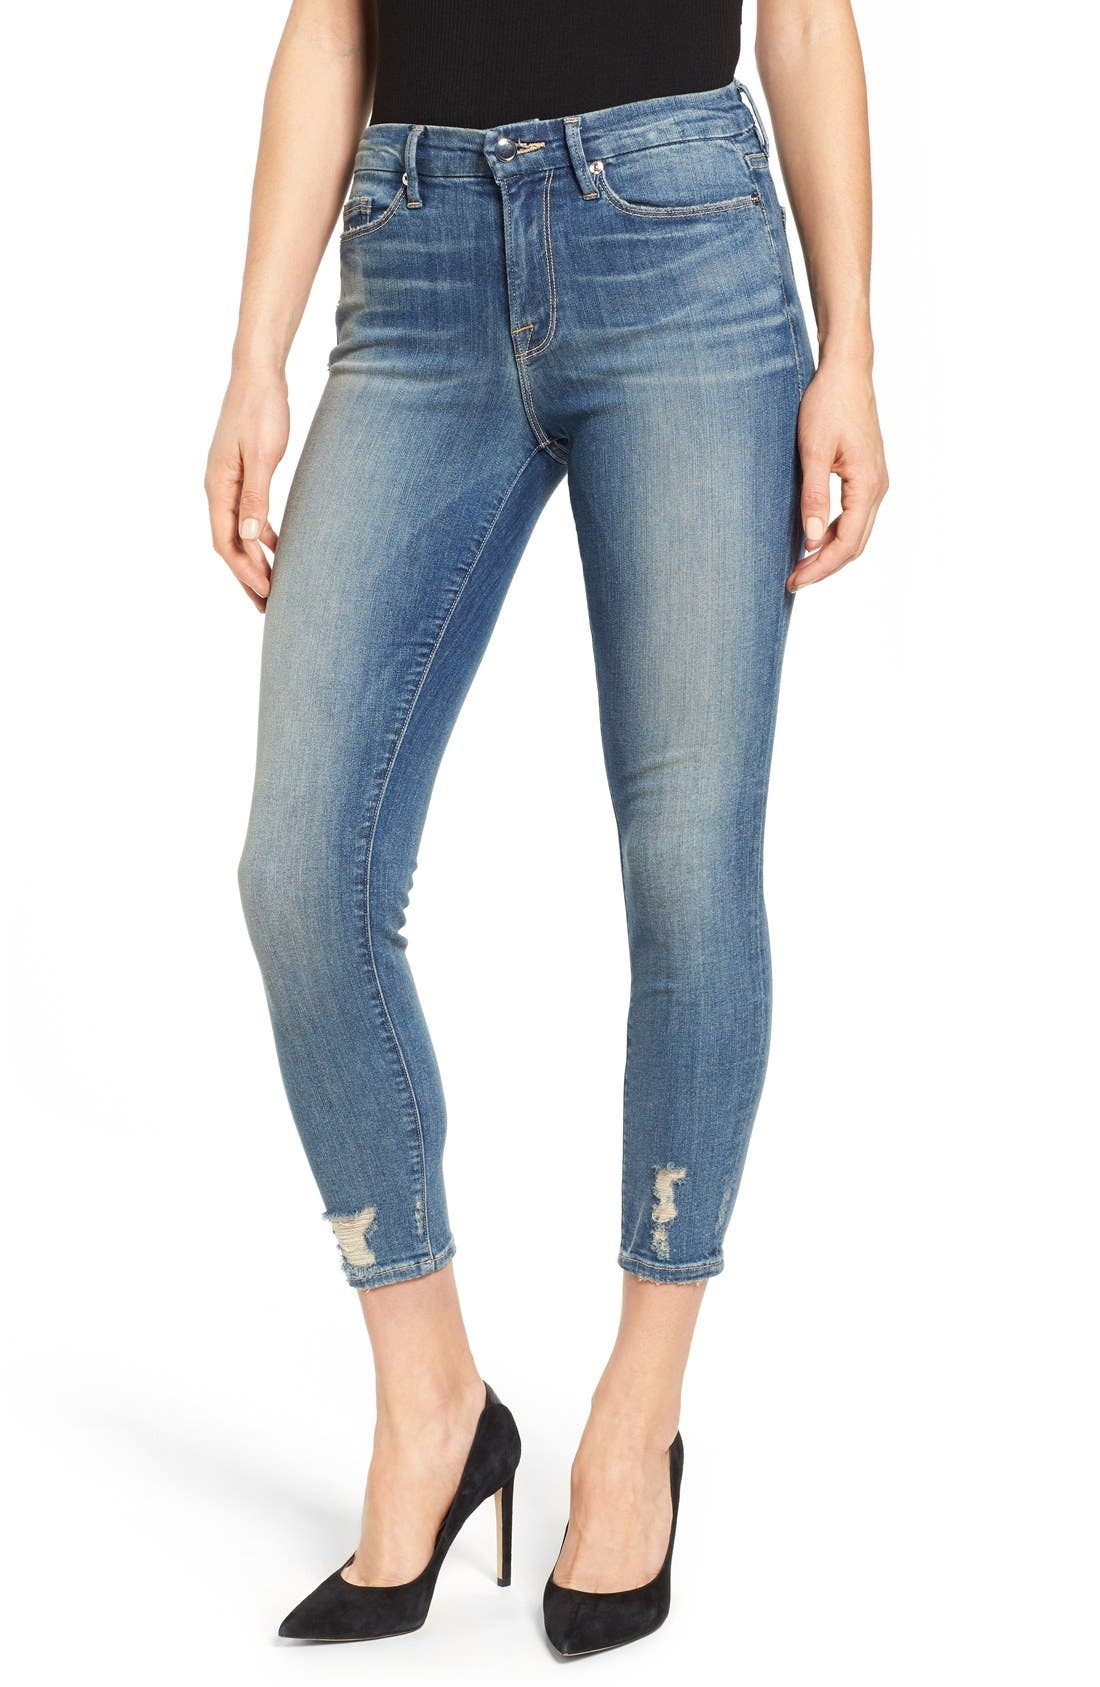 Main Image - Good American Good Legs High Rise Crop Skinny Jeans (Blue 010) (Extended Sizes)